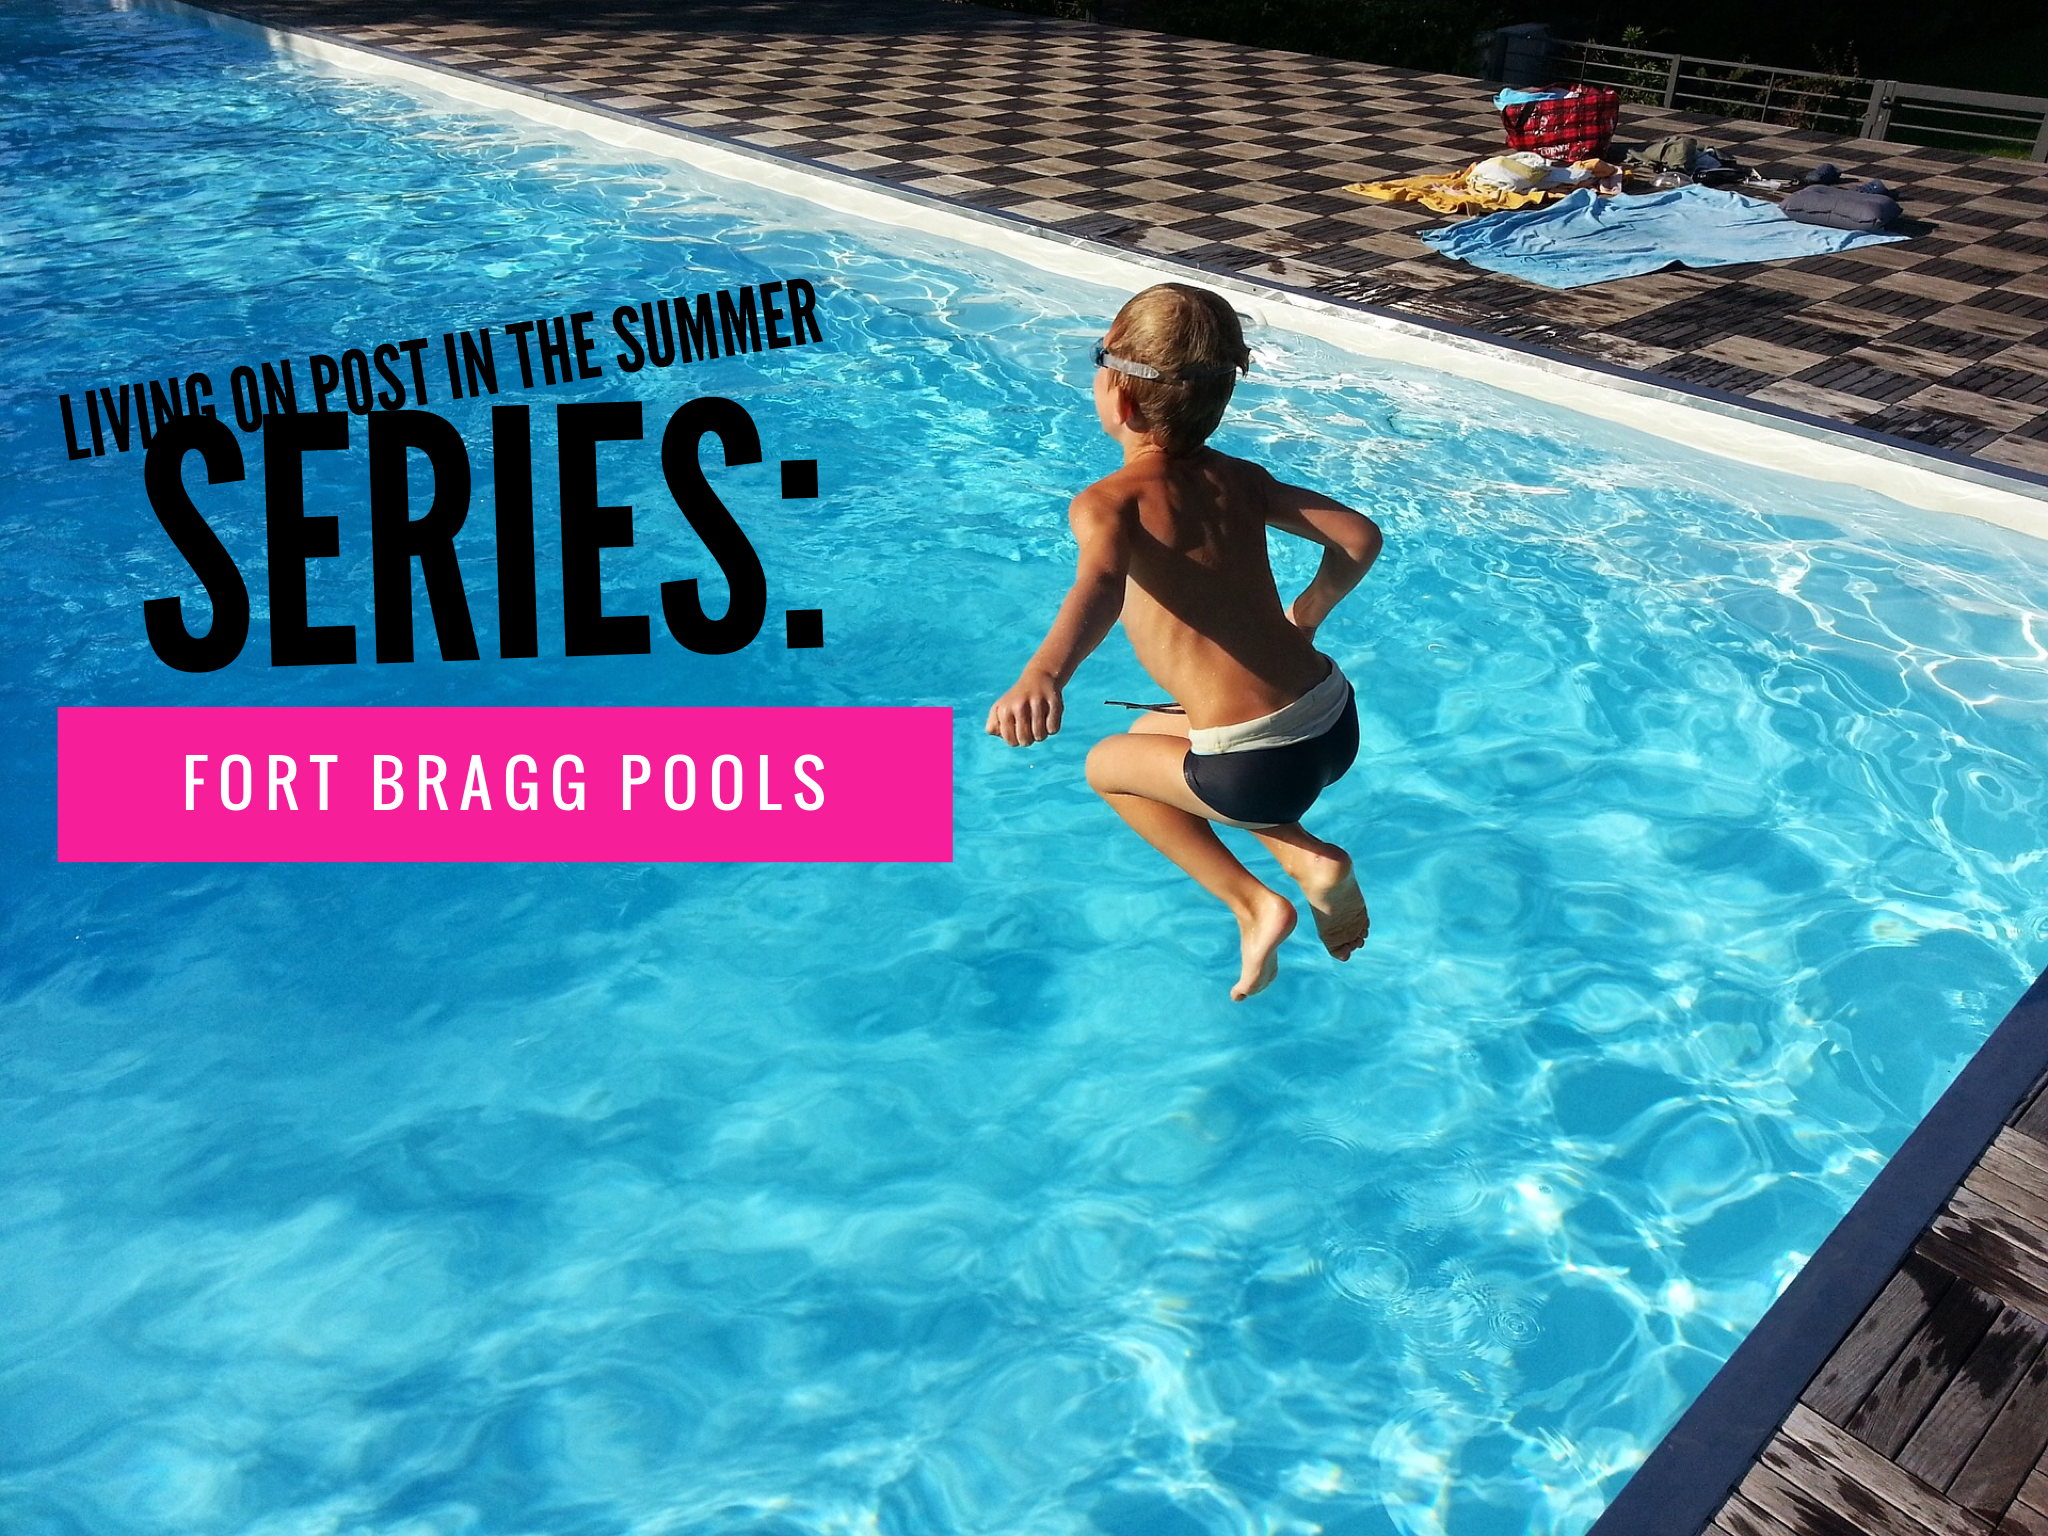 Living On-Post in the Summer Series: Fort Bragg Pools